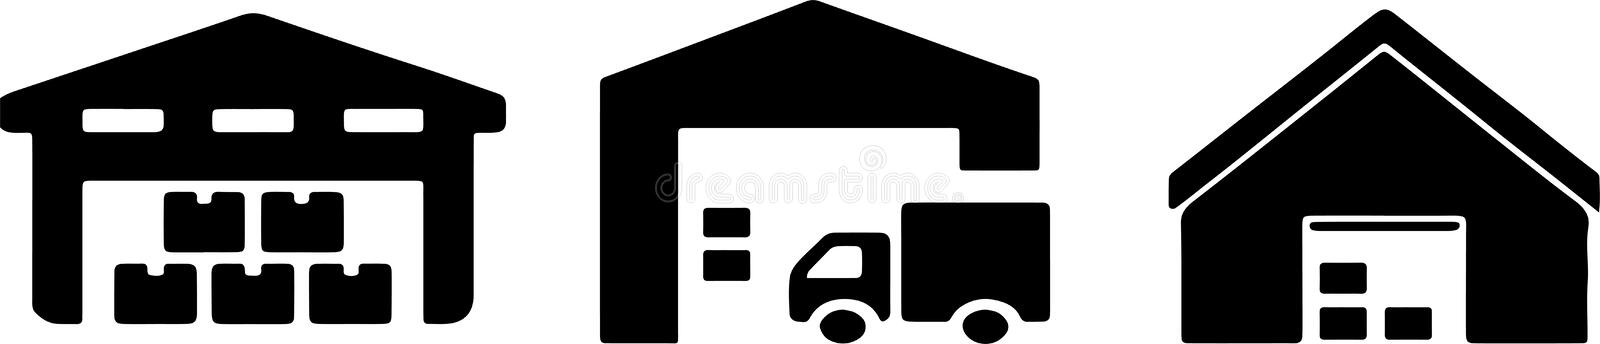 warehouse icon on white background royalty free illustration